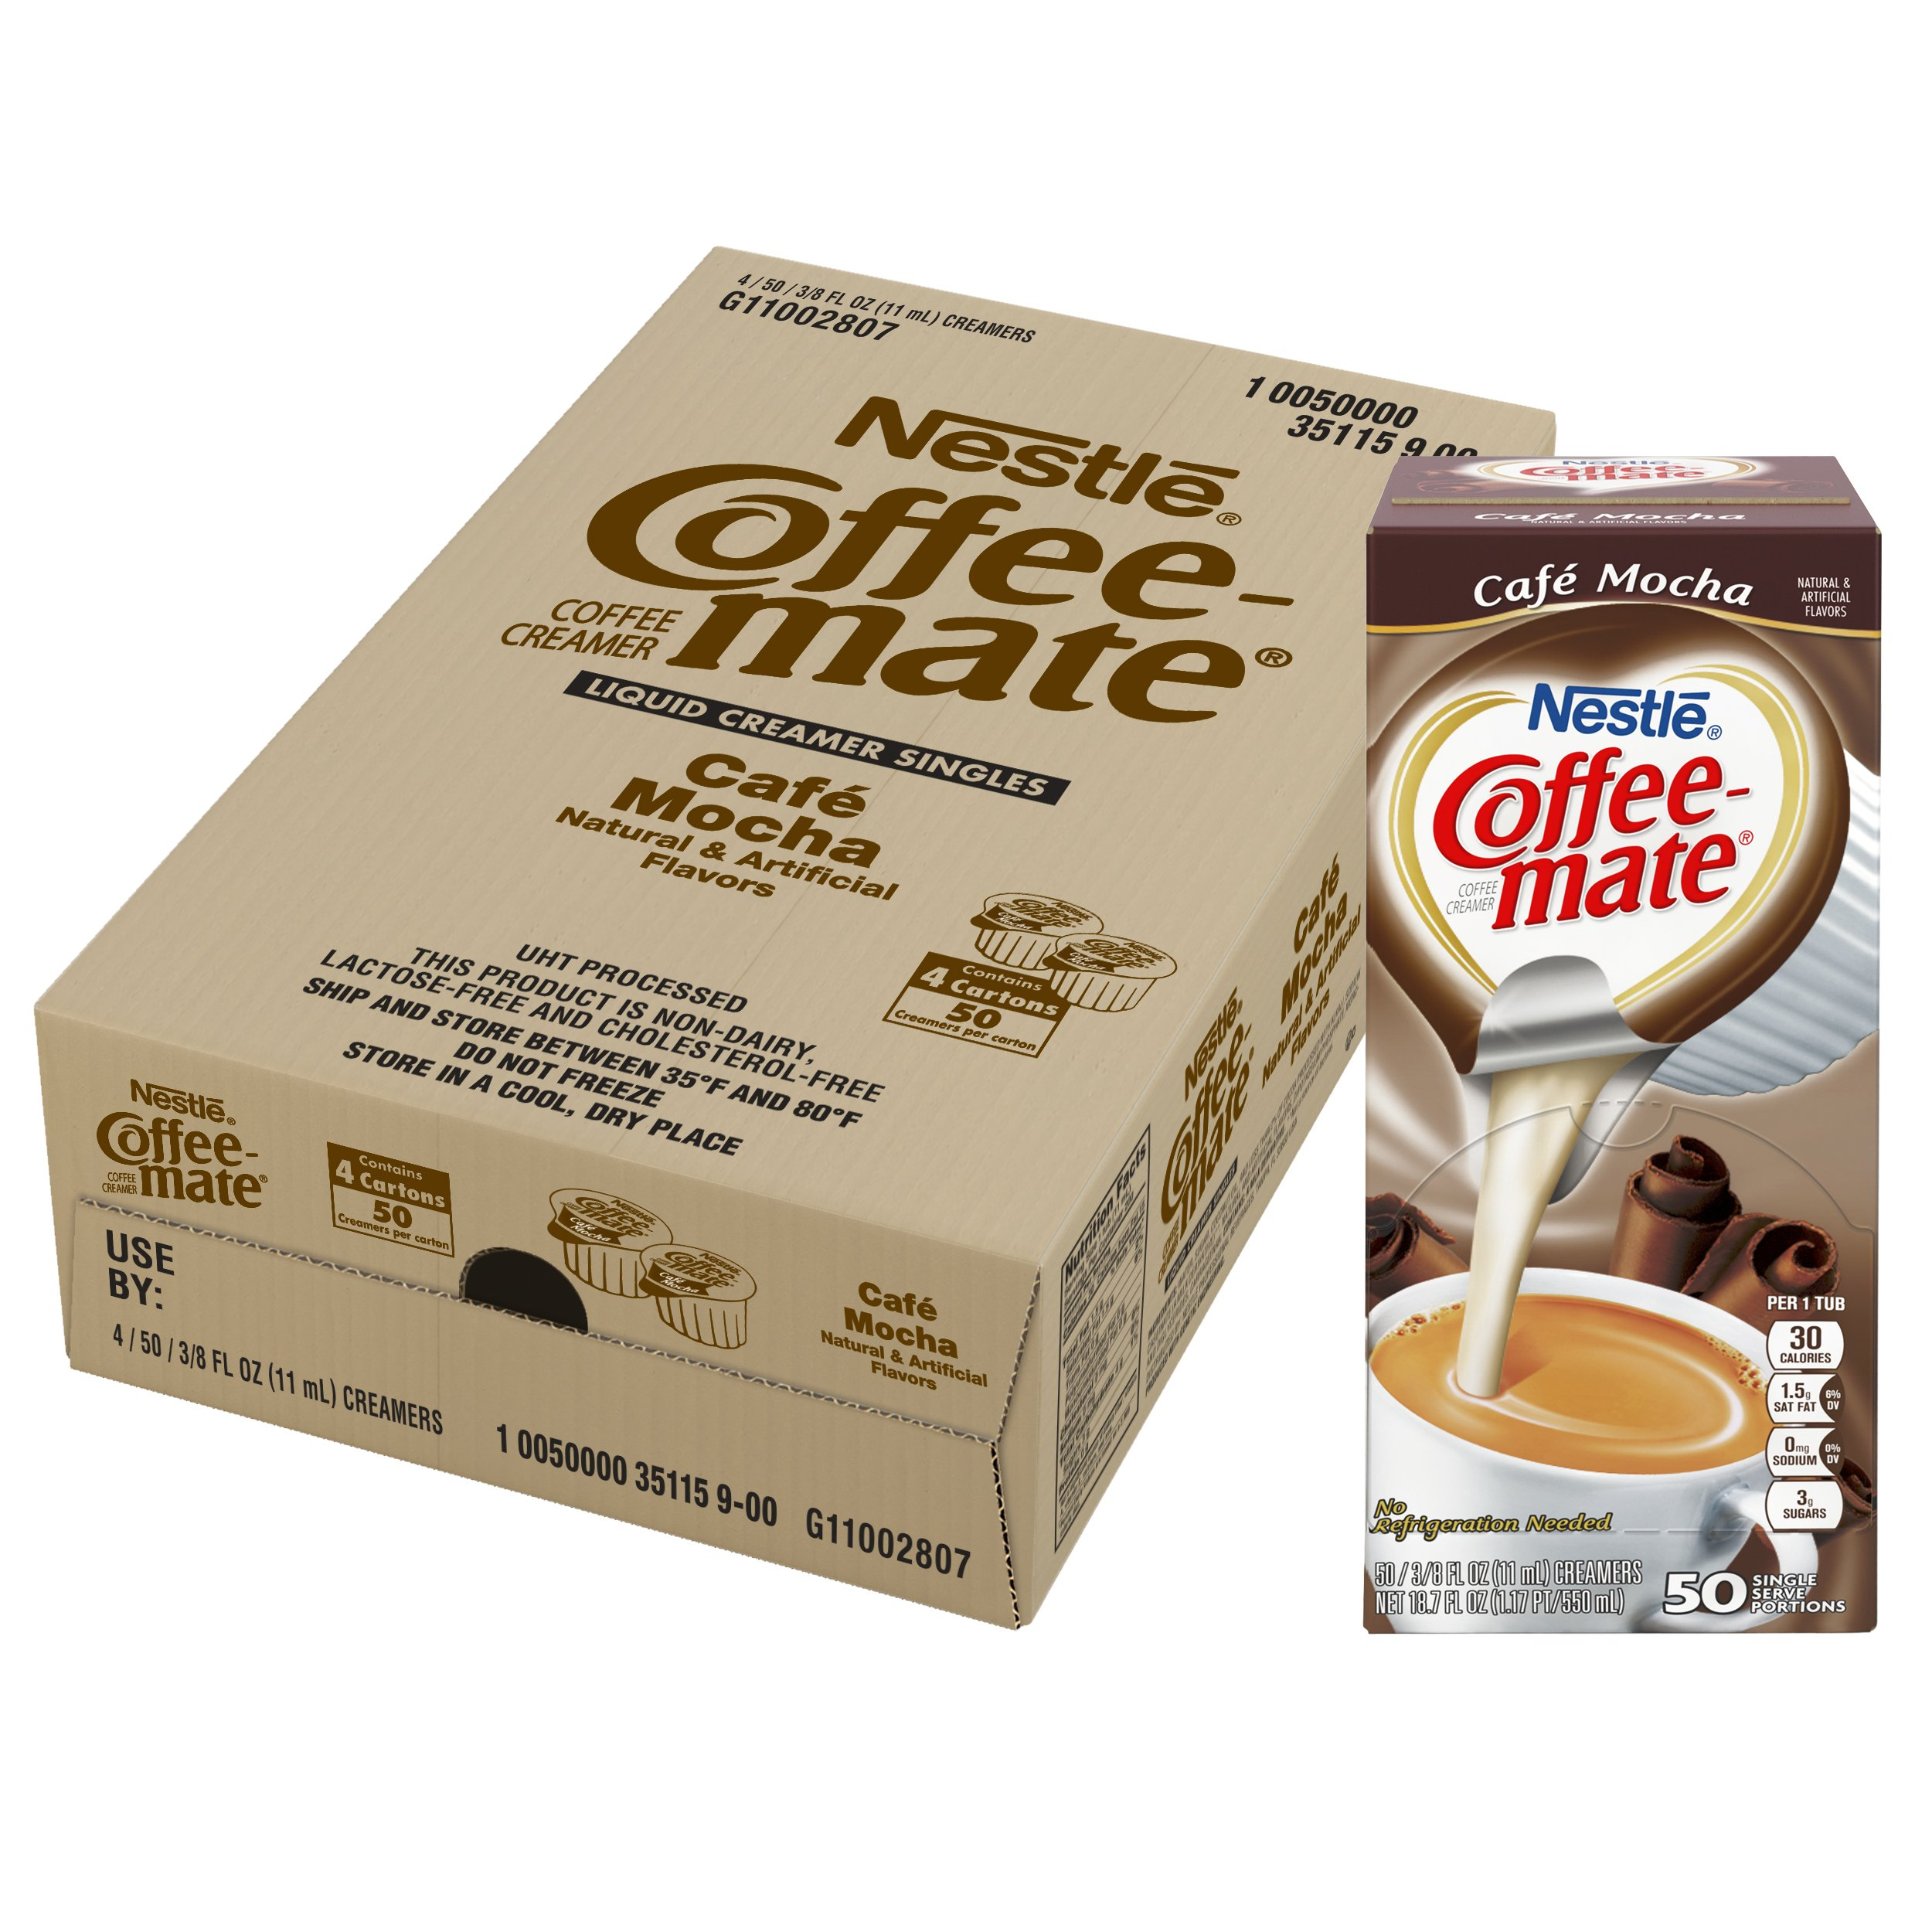 NESTLE COFFEE-MATE Coffee Creamer, Cafe Mocha, liquid creamer singles, 50 Count (Pack of 4) by Nestle Coffee Mate (Image #6)